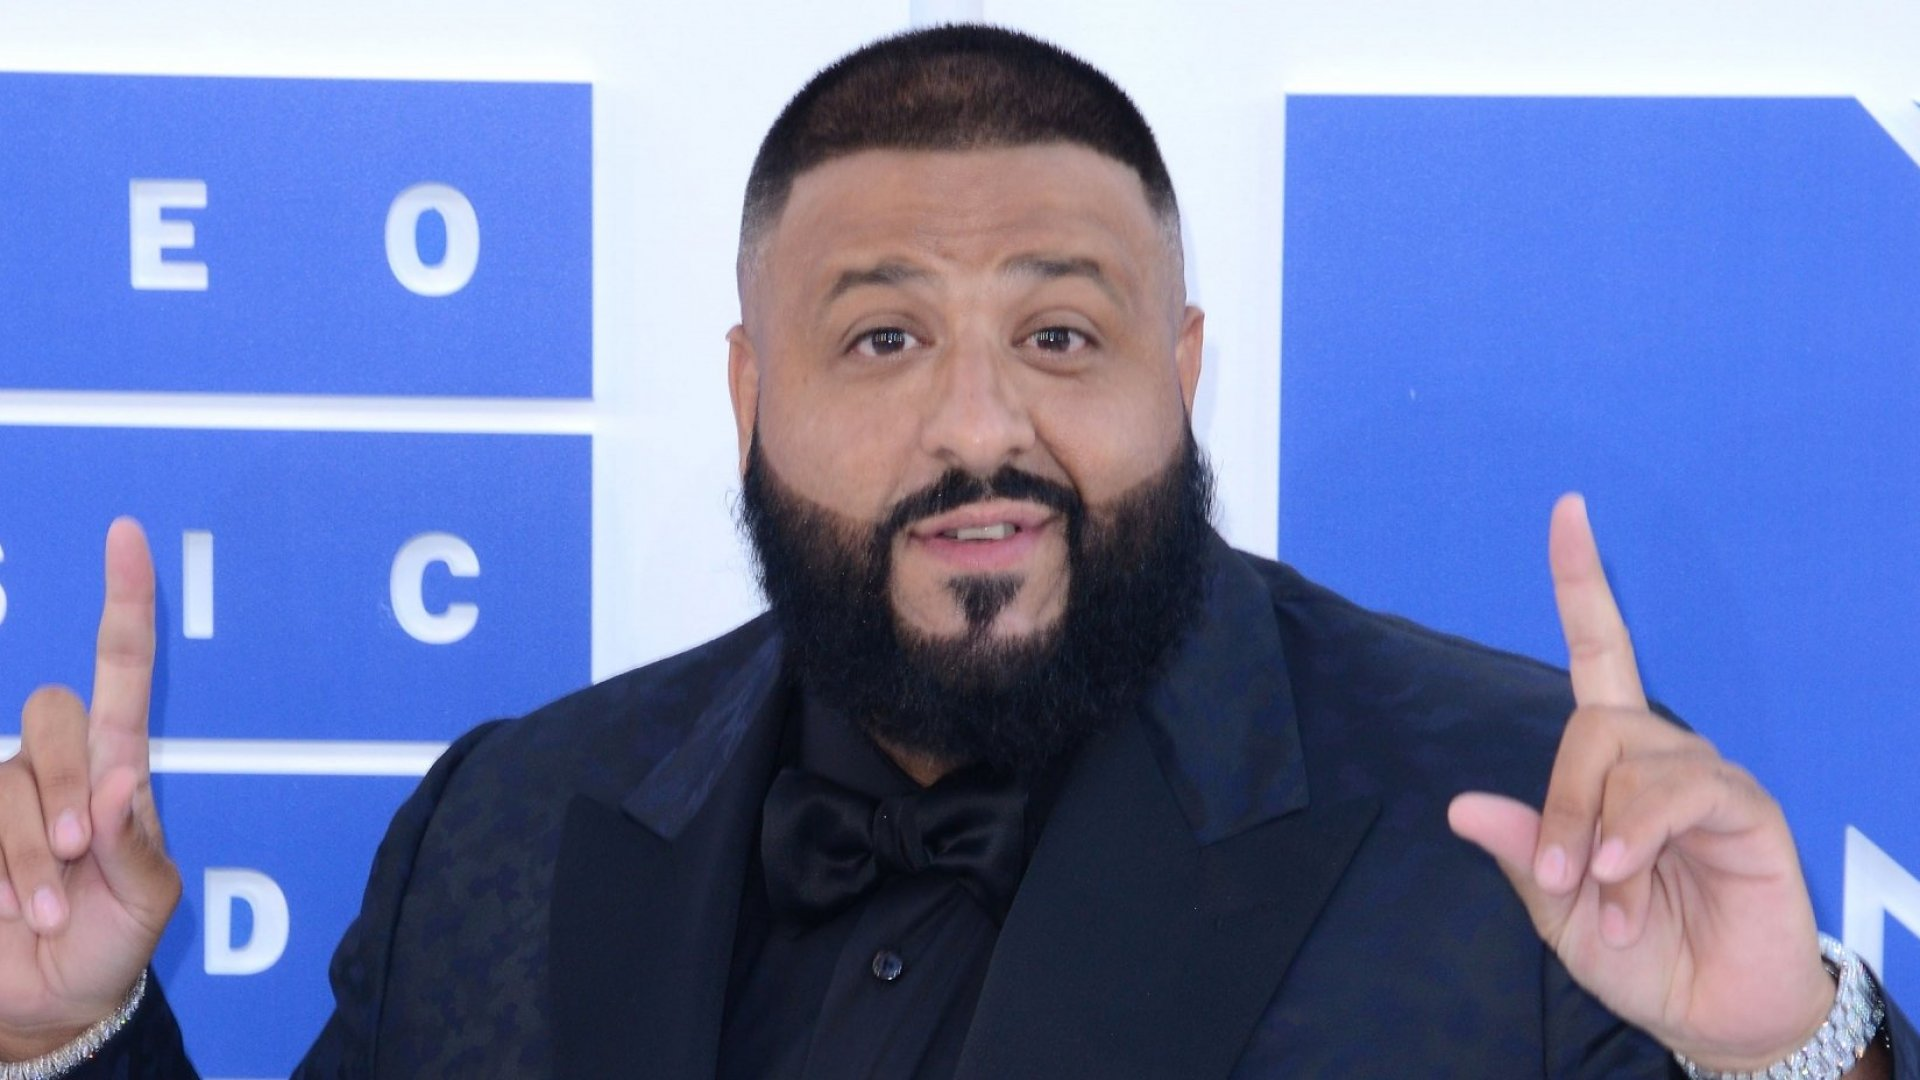 Weight Watchers Hires DJ Khaled as Its New Spokesperson and Its Stock Goes Up